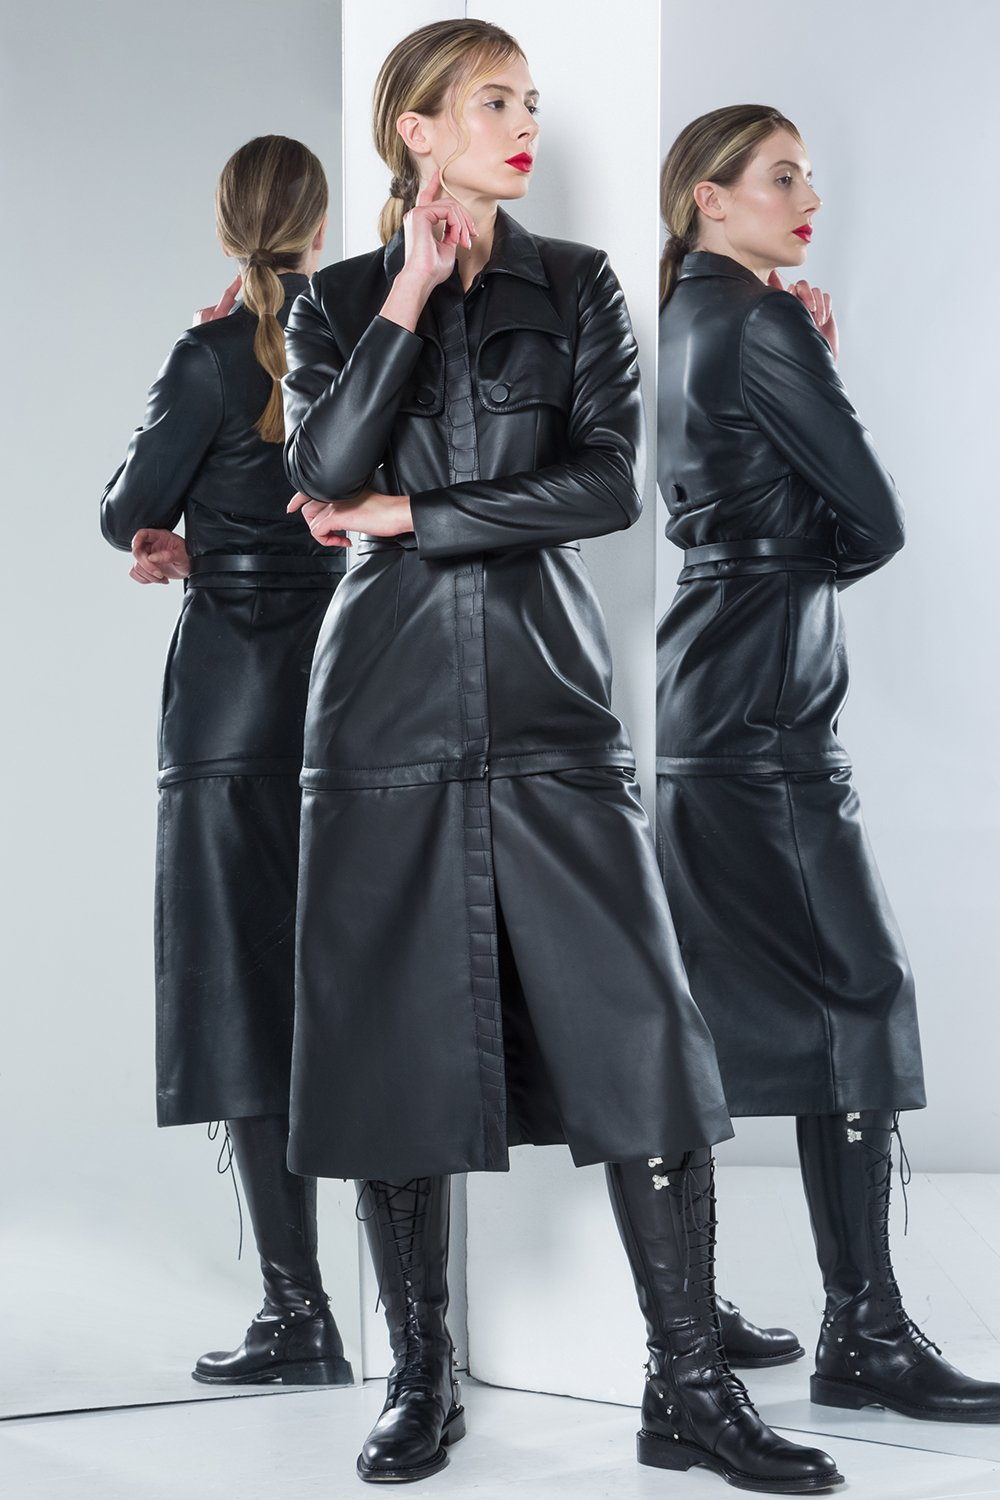 Transformer Trench Coat PRITCH London.com, MADE TO MEASURE